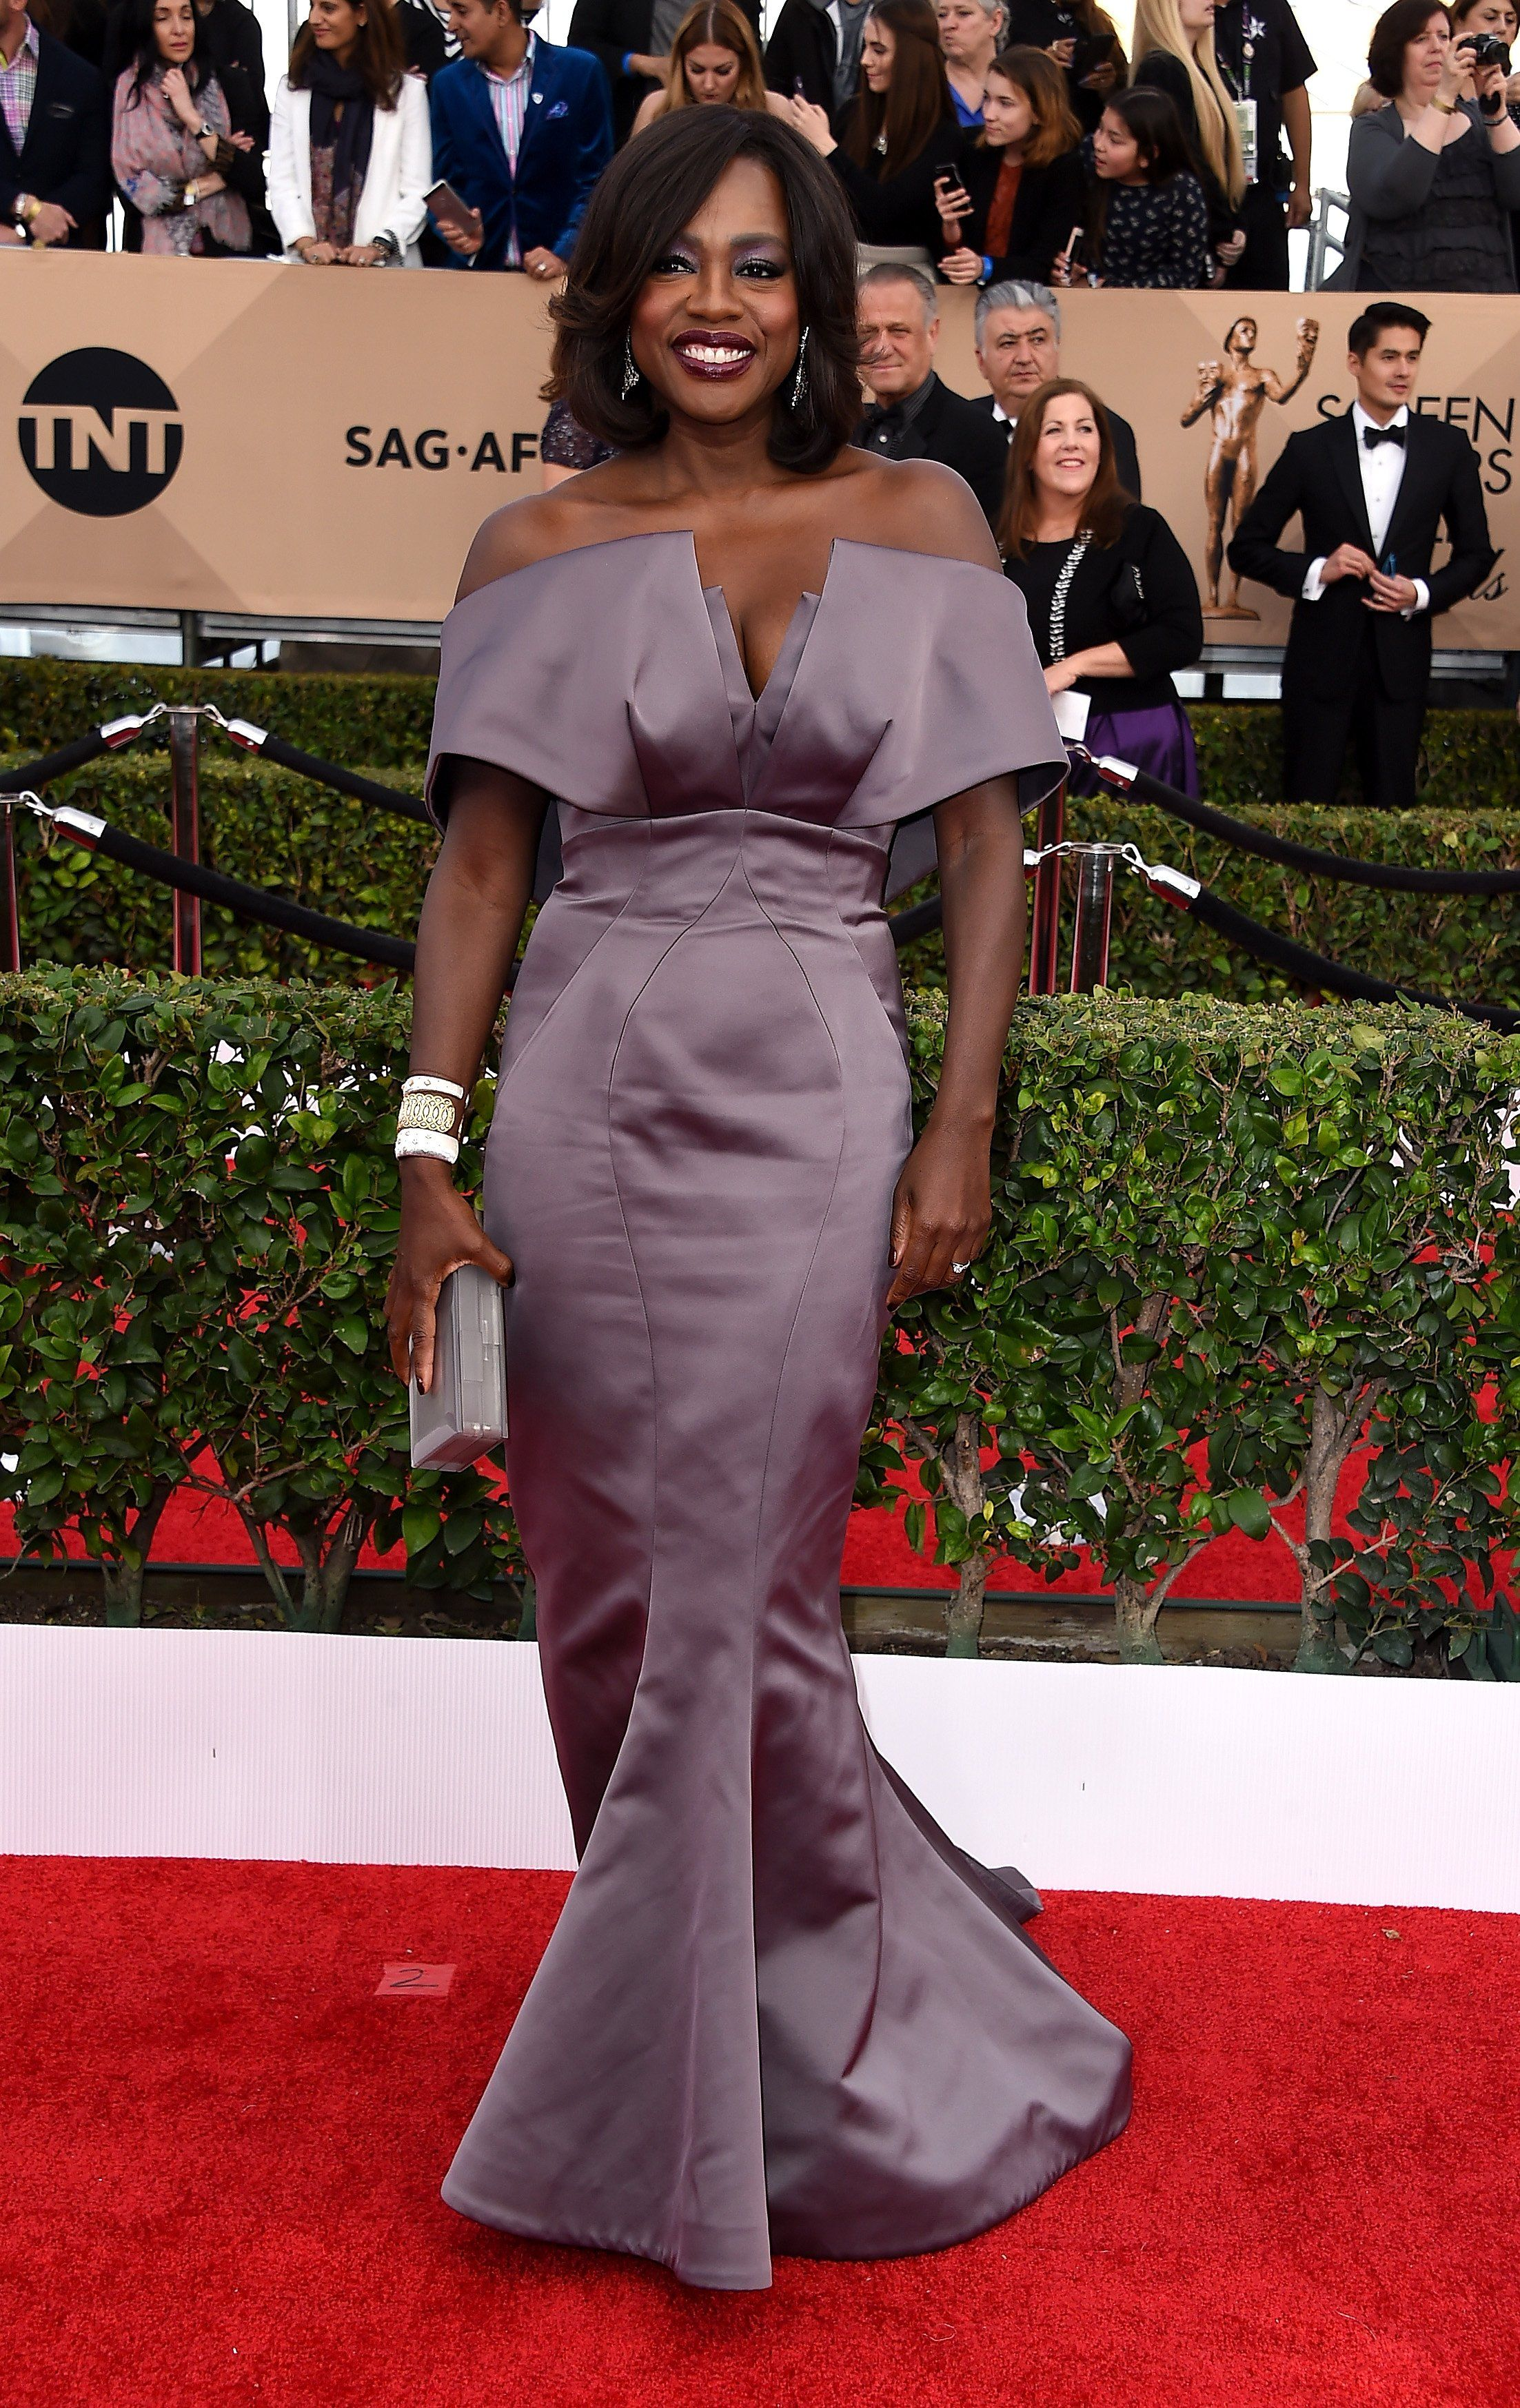 Sag awards fashionulive from the red carpet in who are